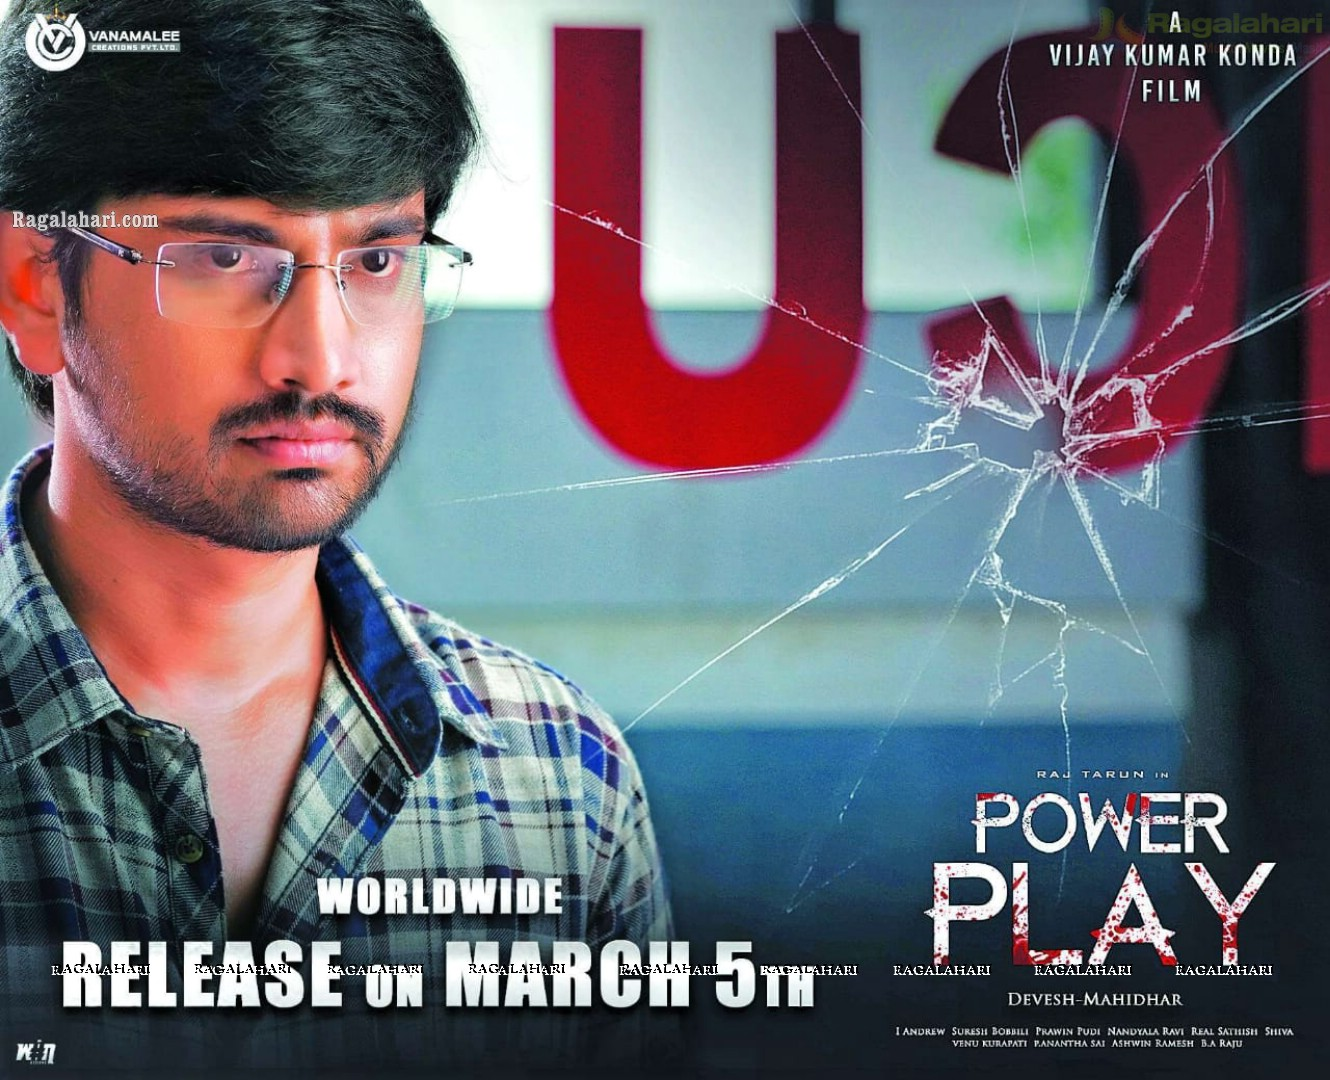 Power Play Movie Release Date Poster Design